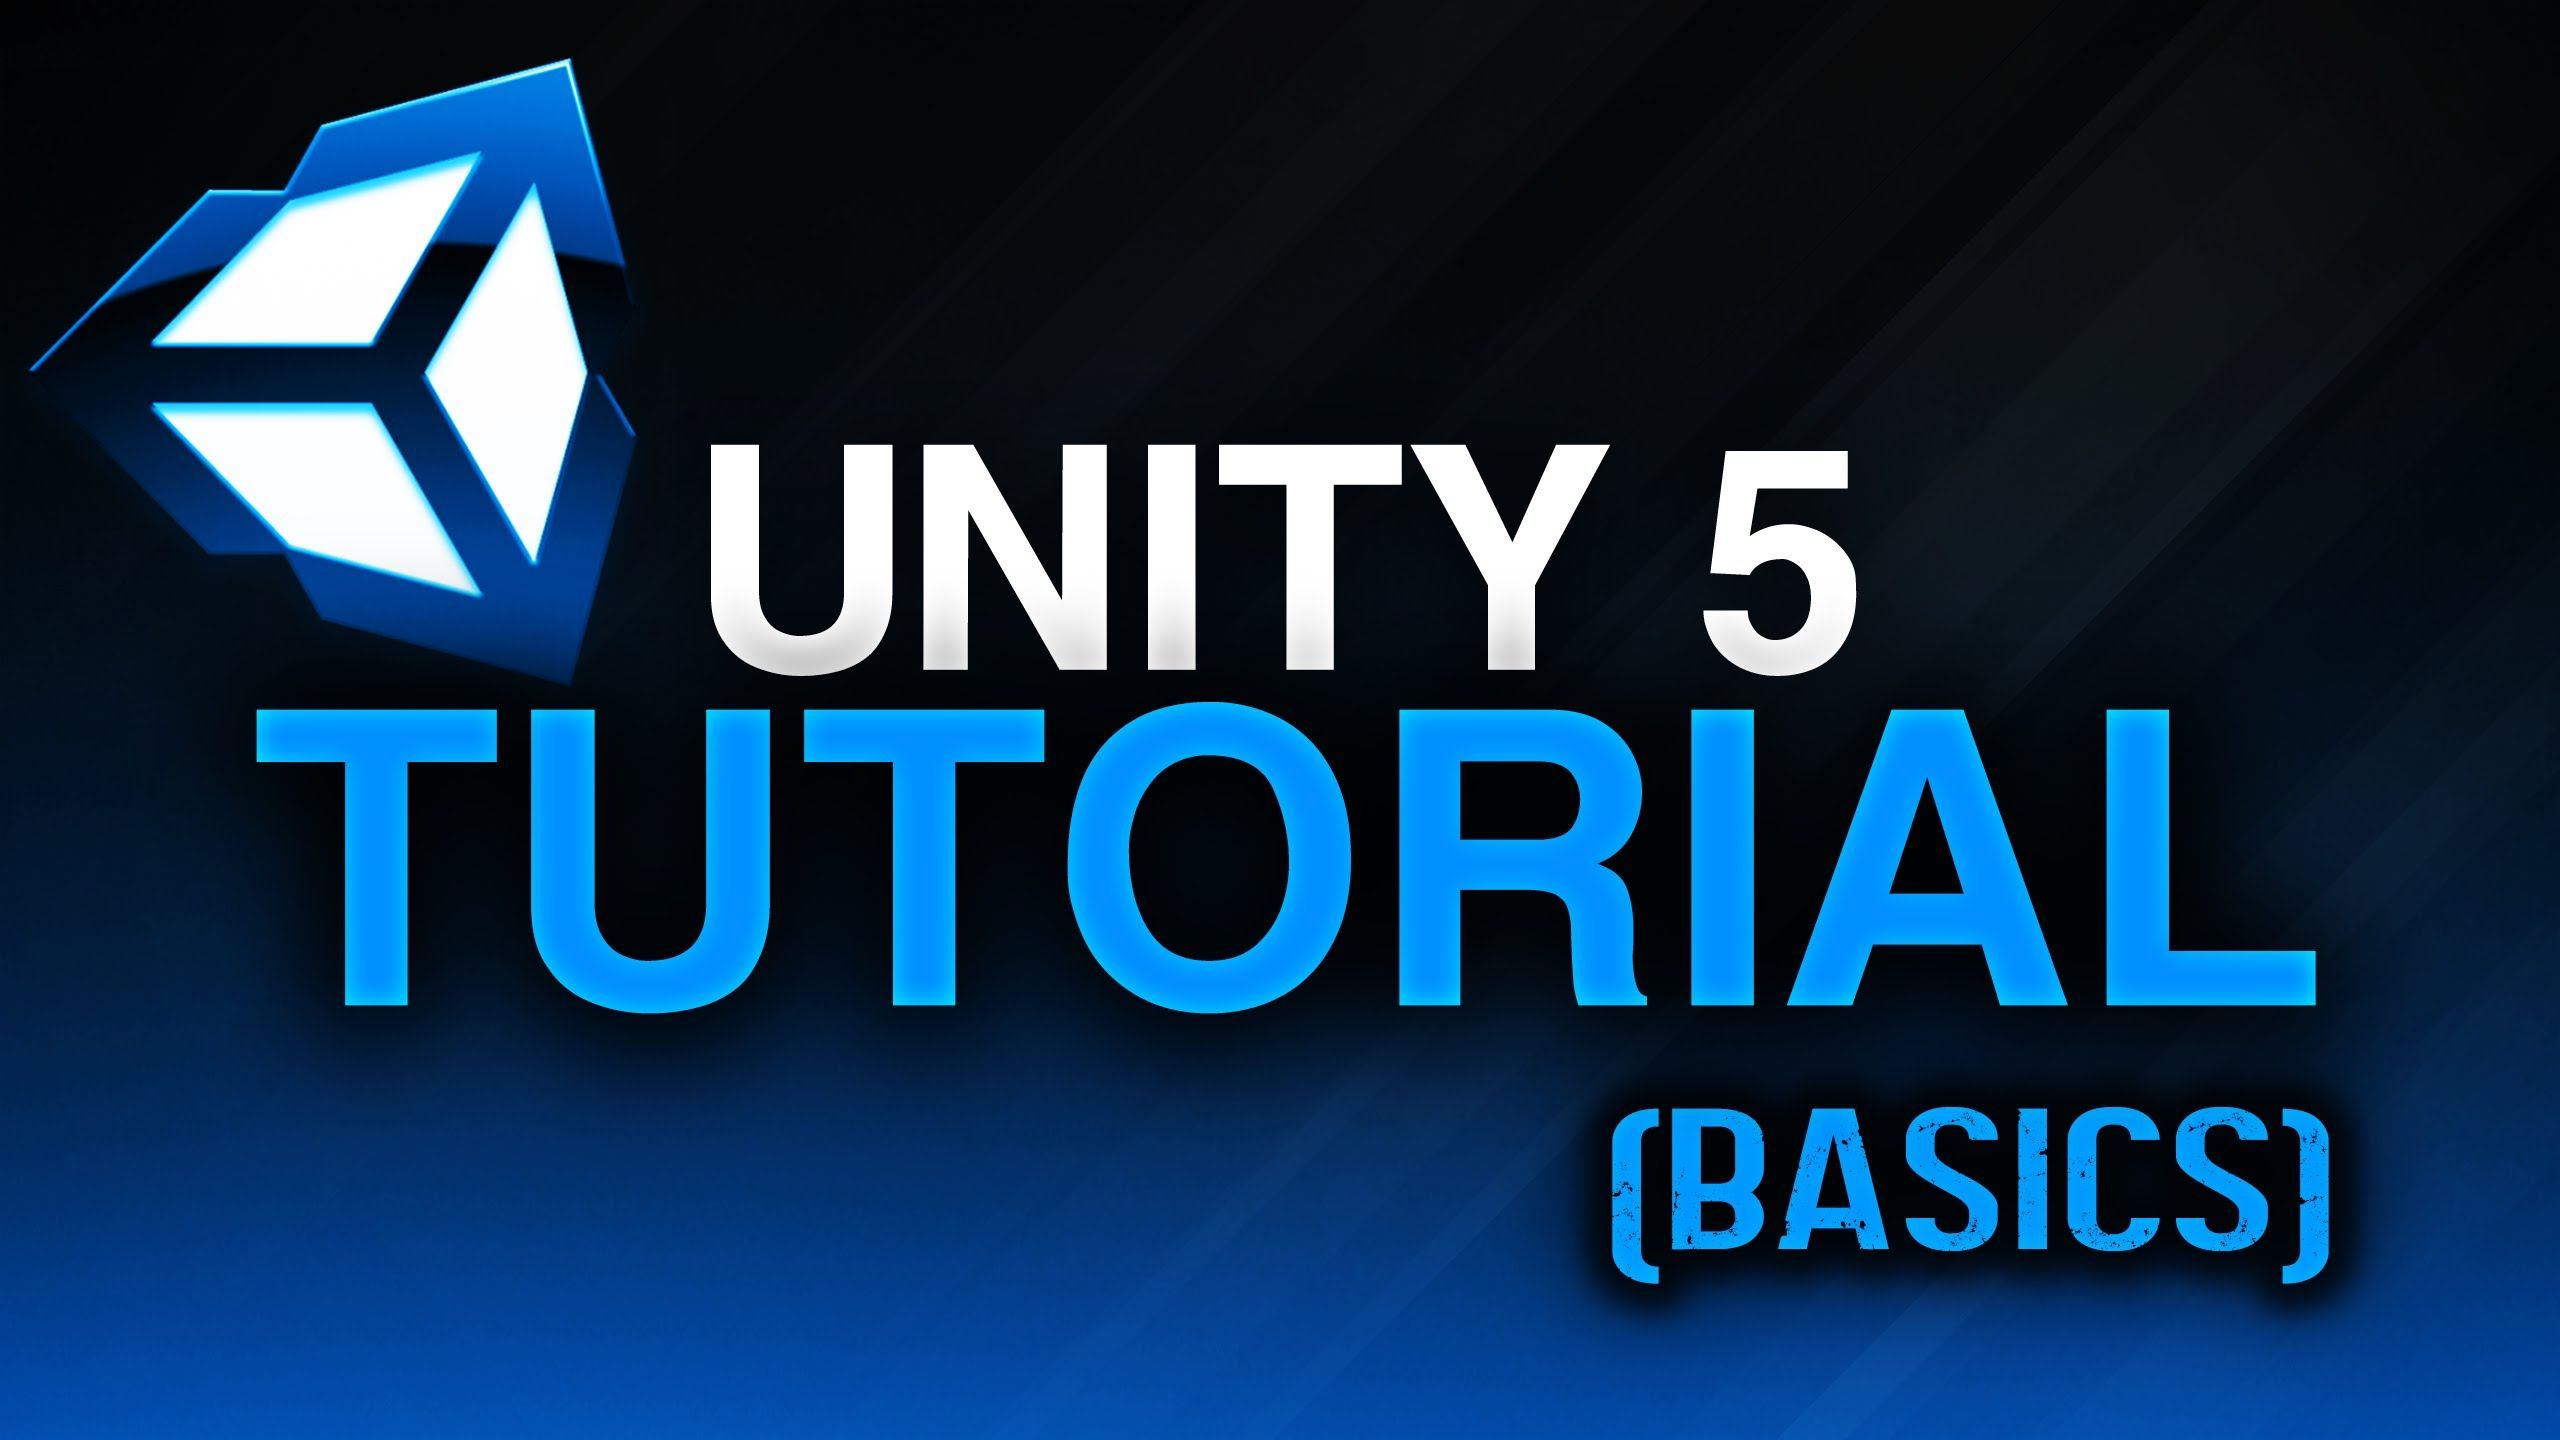 Unity 5 in depth basics tutorial this tutorial is most suitable unity 5 in depth basics tutorial this tutorial is most suitable for beginners who are looking to start developing in the unity engine baditri Choice Image